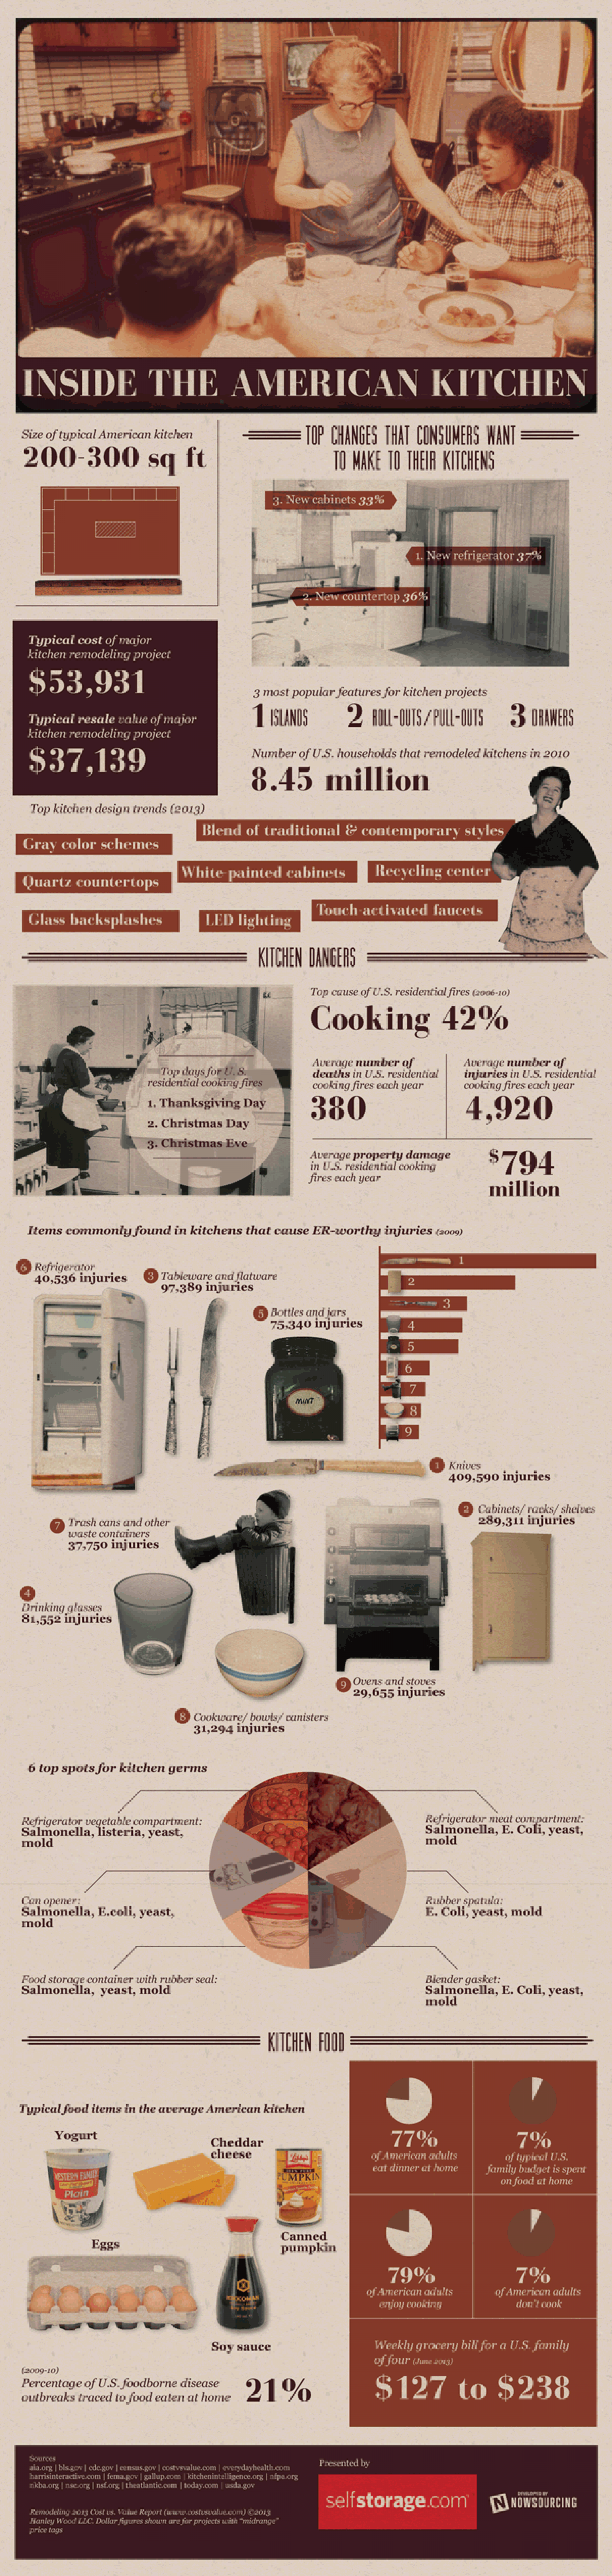 Inside the American Kitchen Infographic